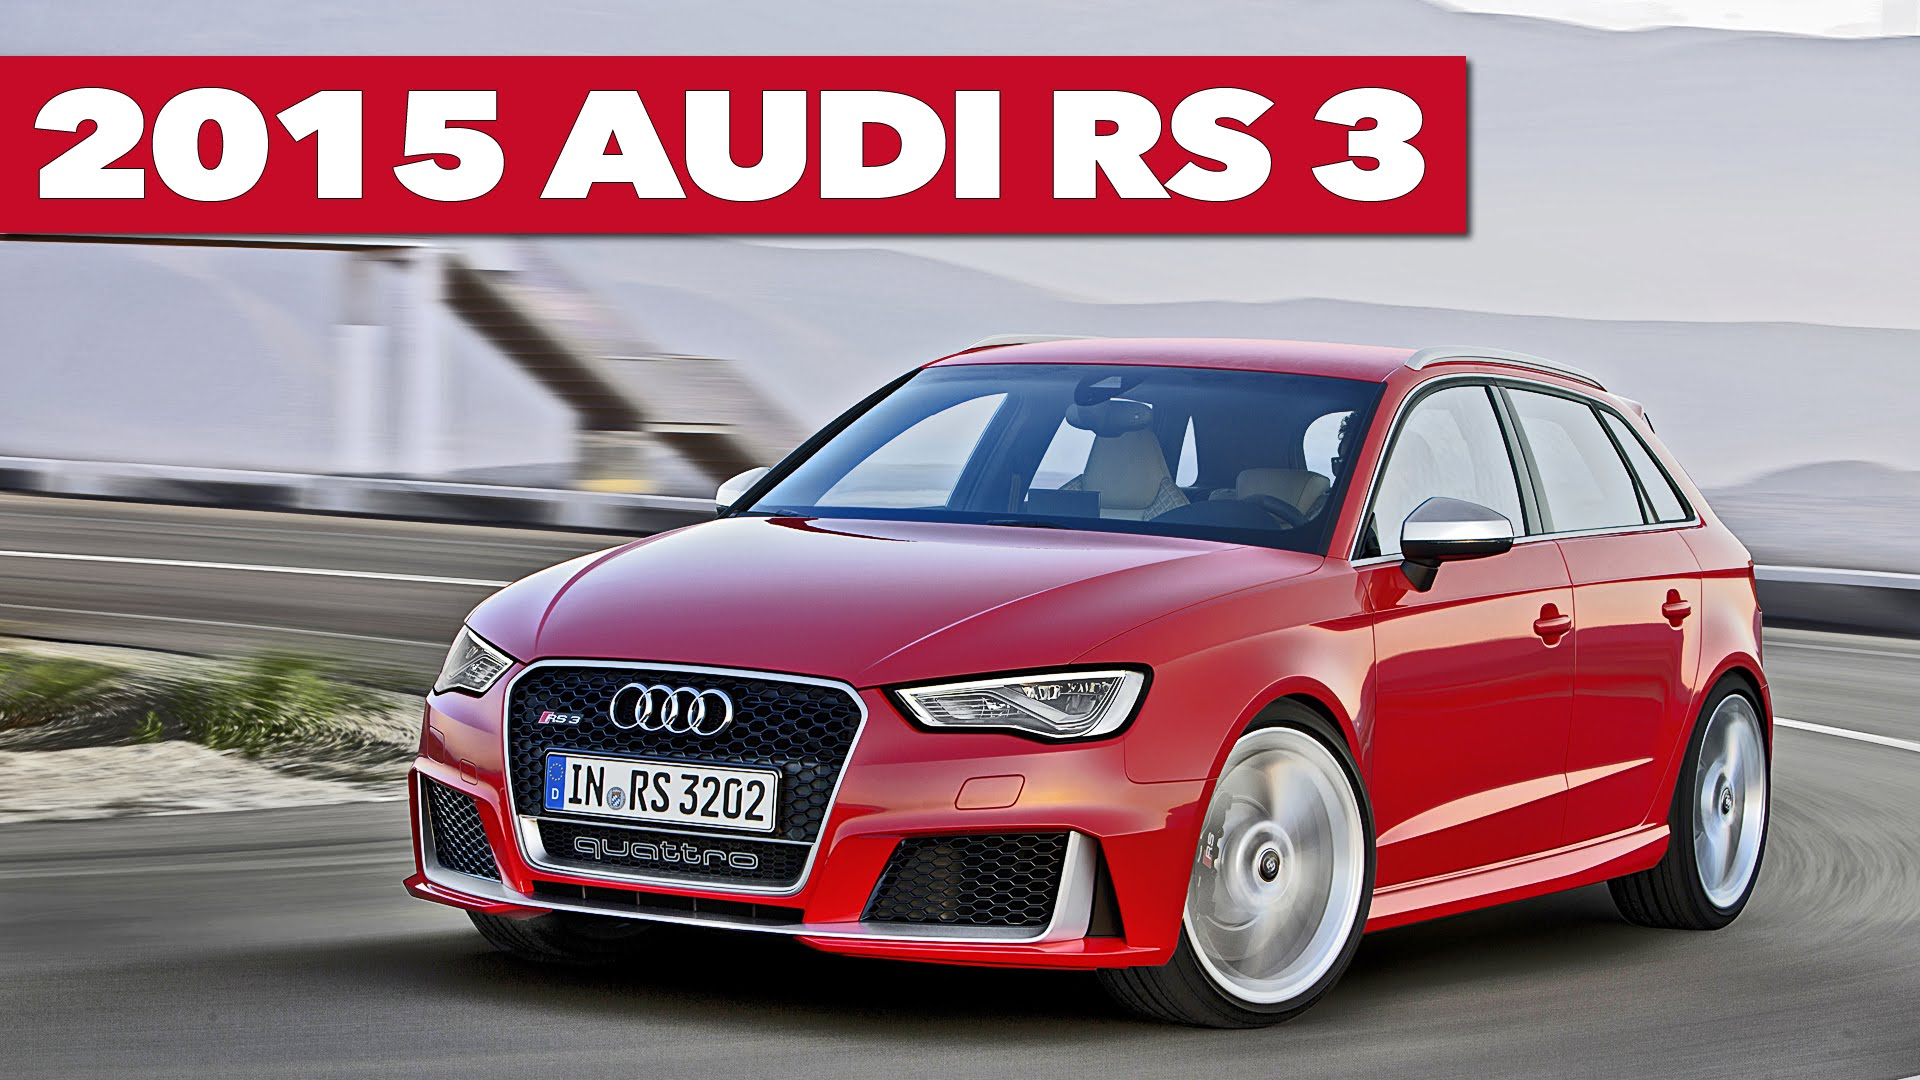 NEW 2015 Audi RS3 Sportback OFFICIAL Trailer